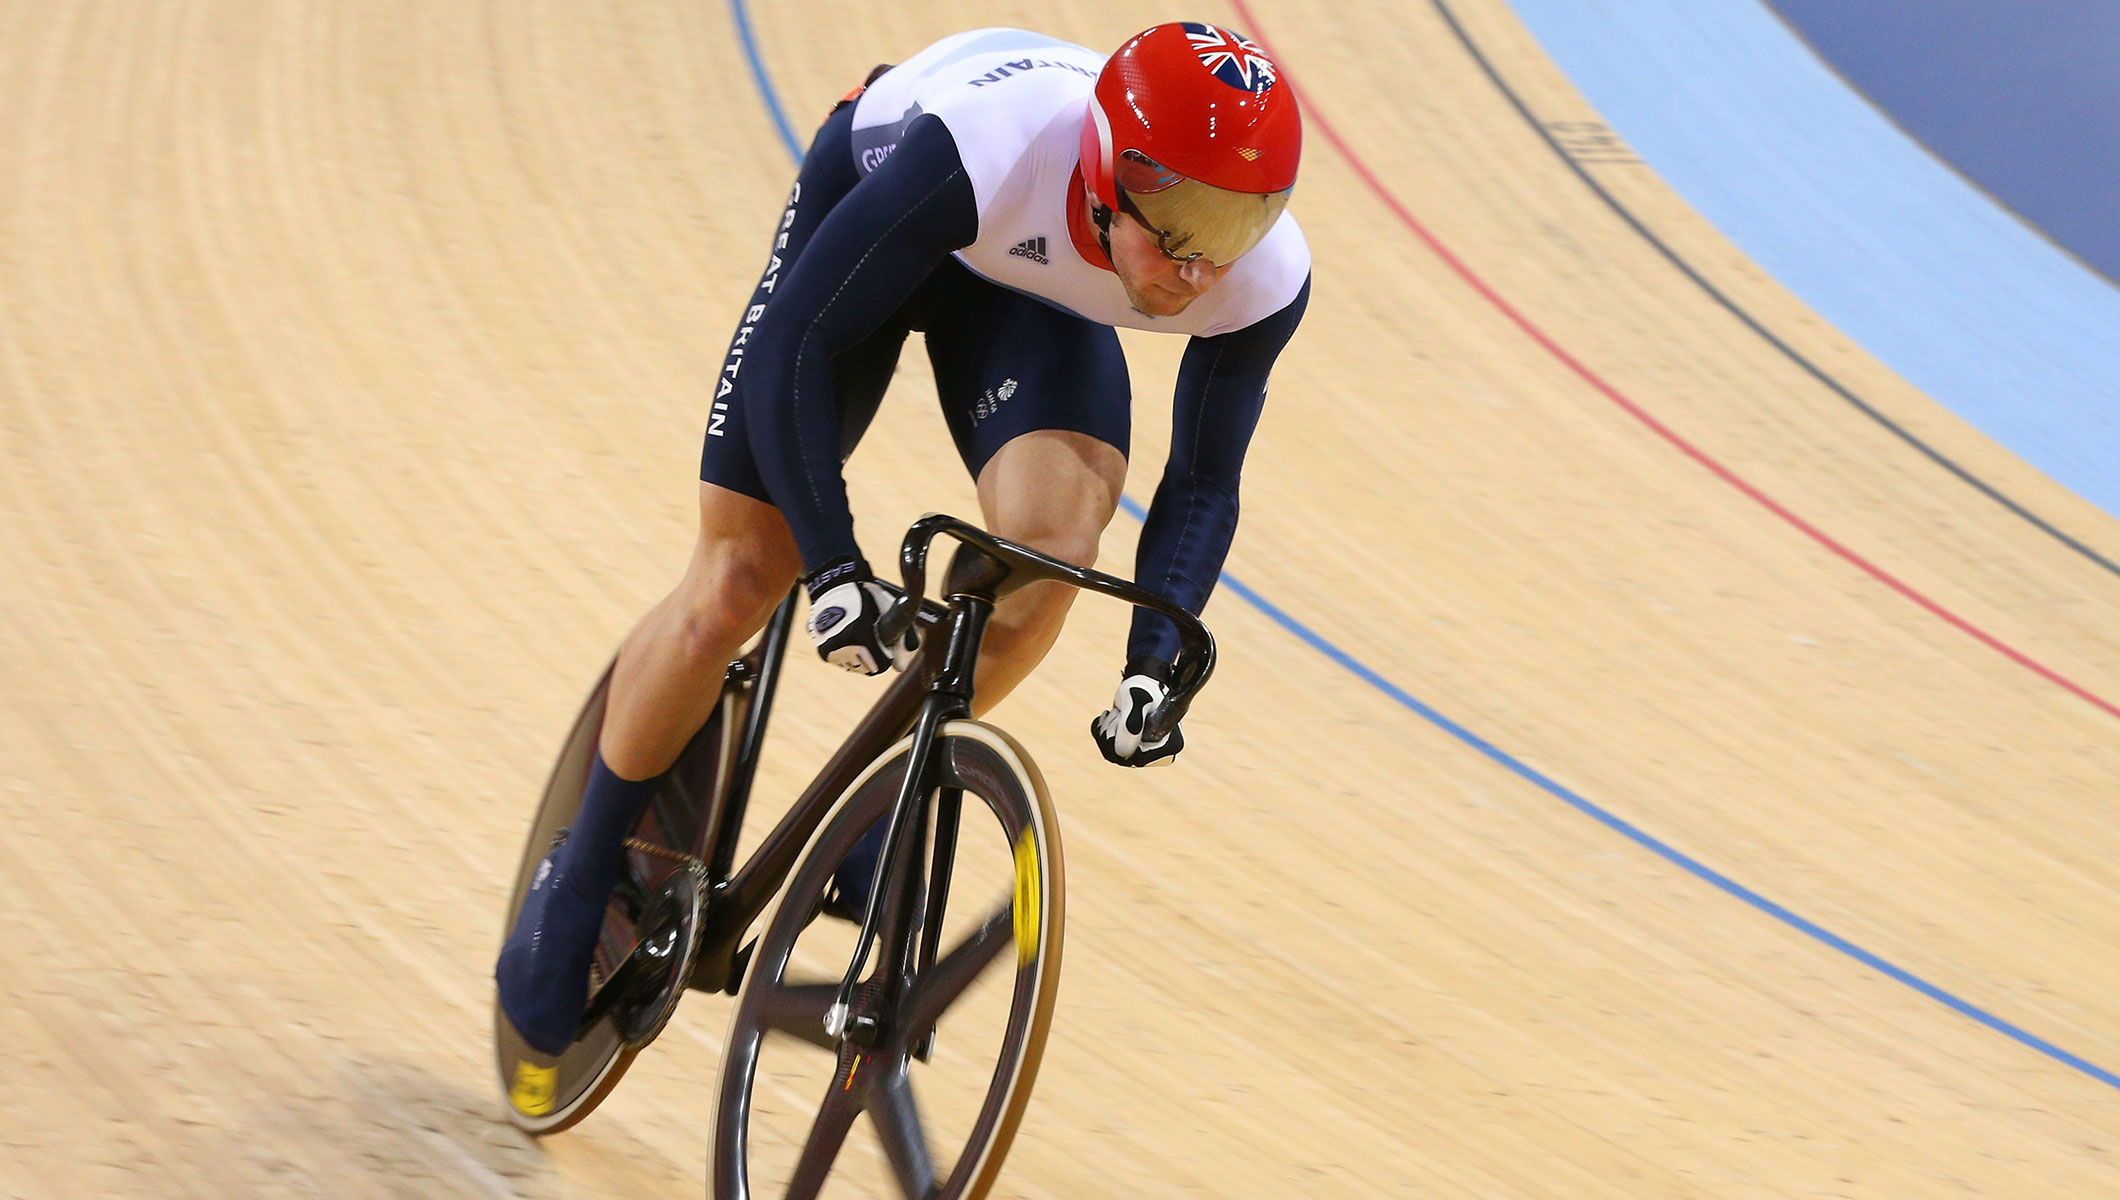 Jason Kenny competes at the London 2012 Olympic Games, Men's Sprint Track Cycling Competition